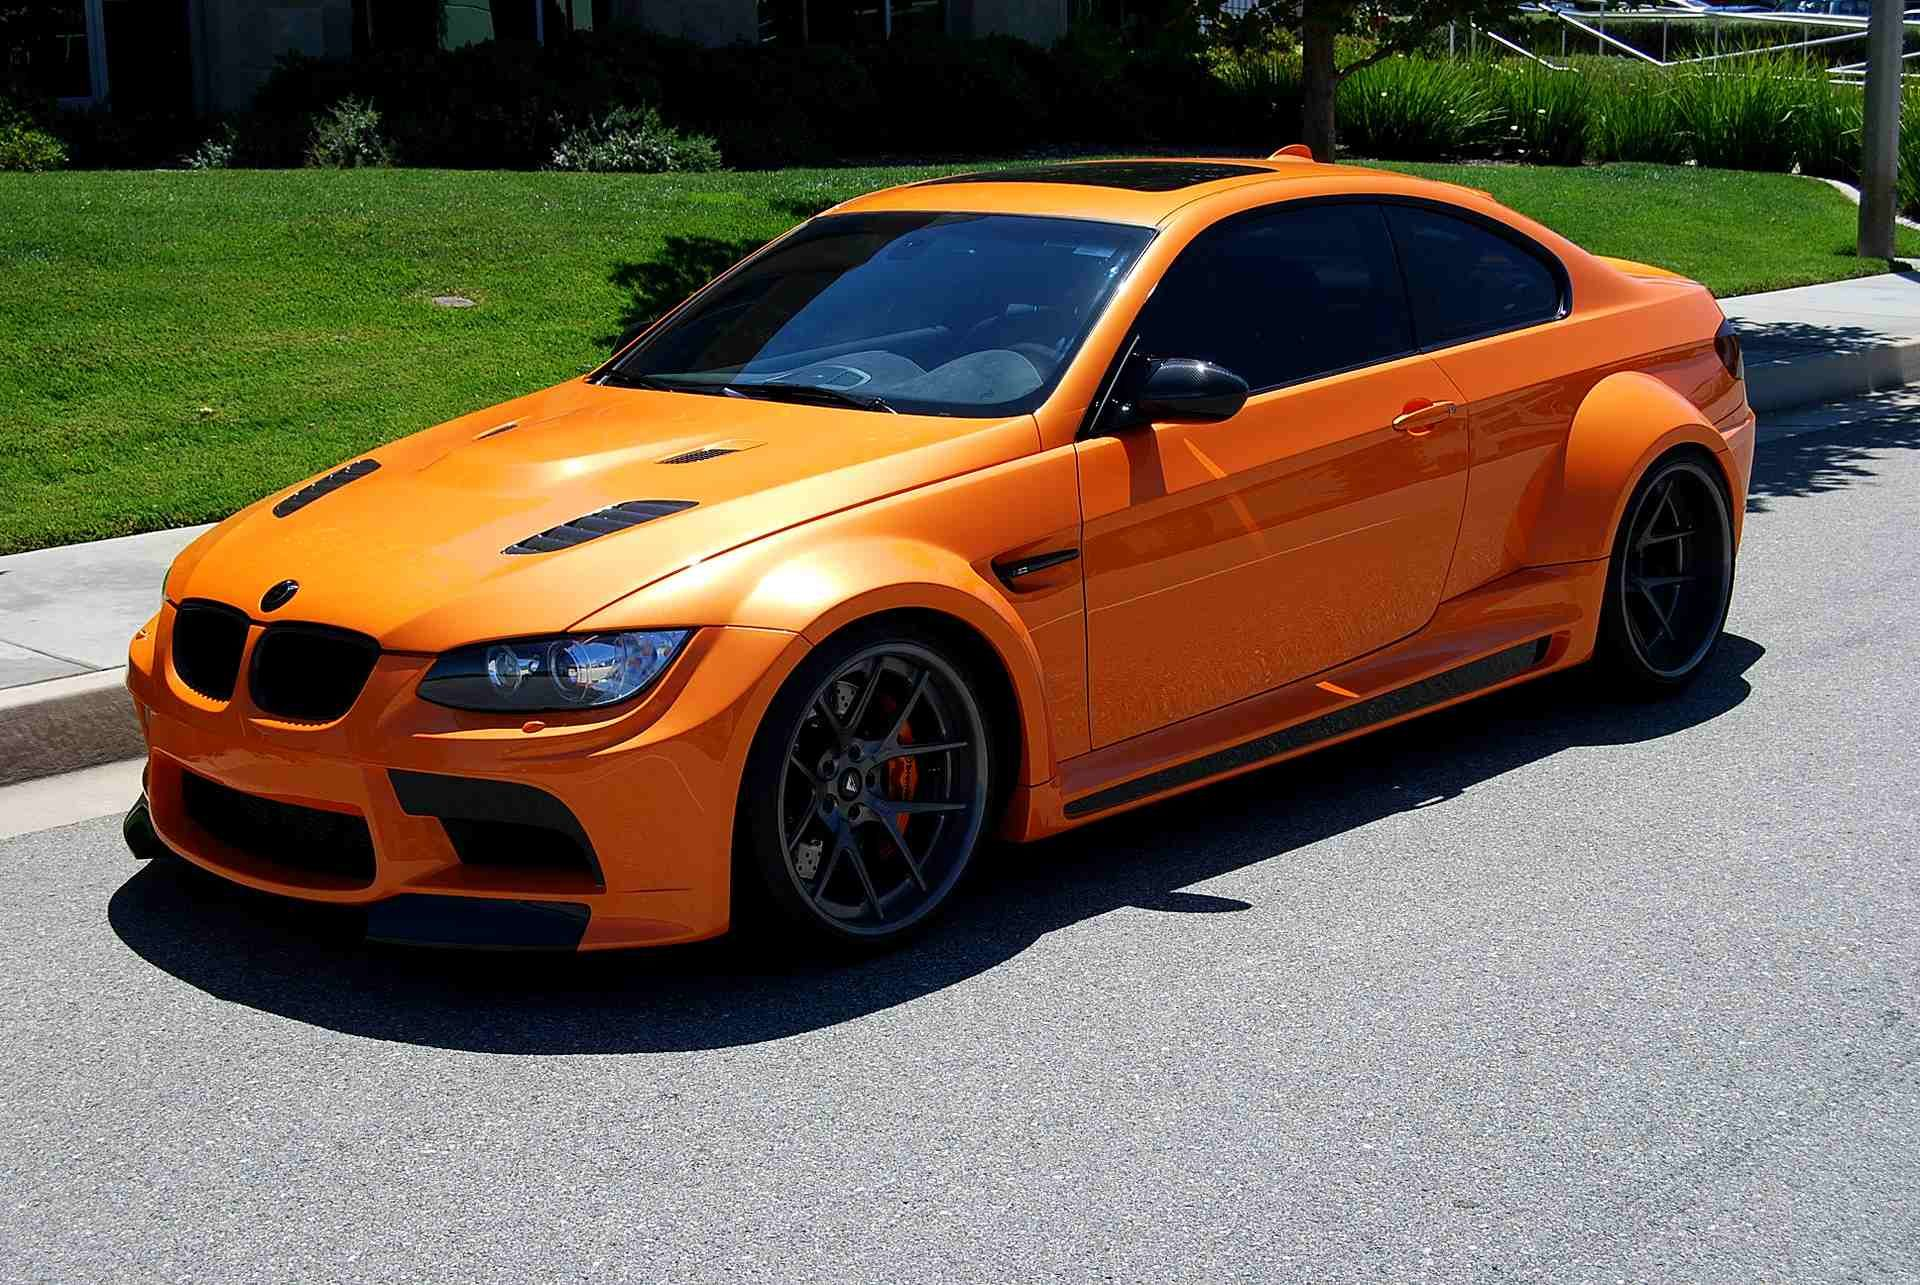 Improving perfection powerbeasts dakar yellow bmw e90 m3 individual bmw m3 forum e90 e92 cars pinterest bmw m3 forum bmw m3 and bmw